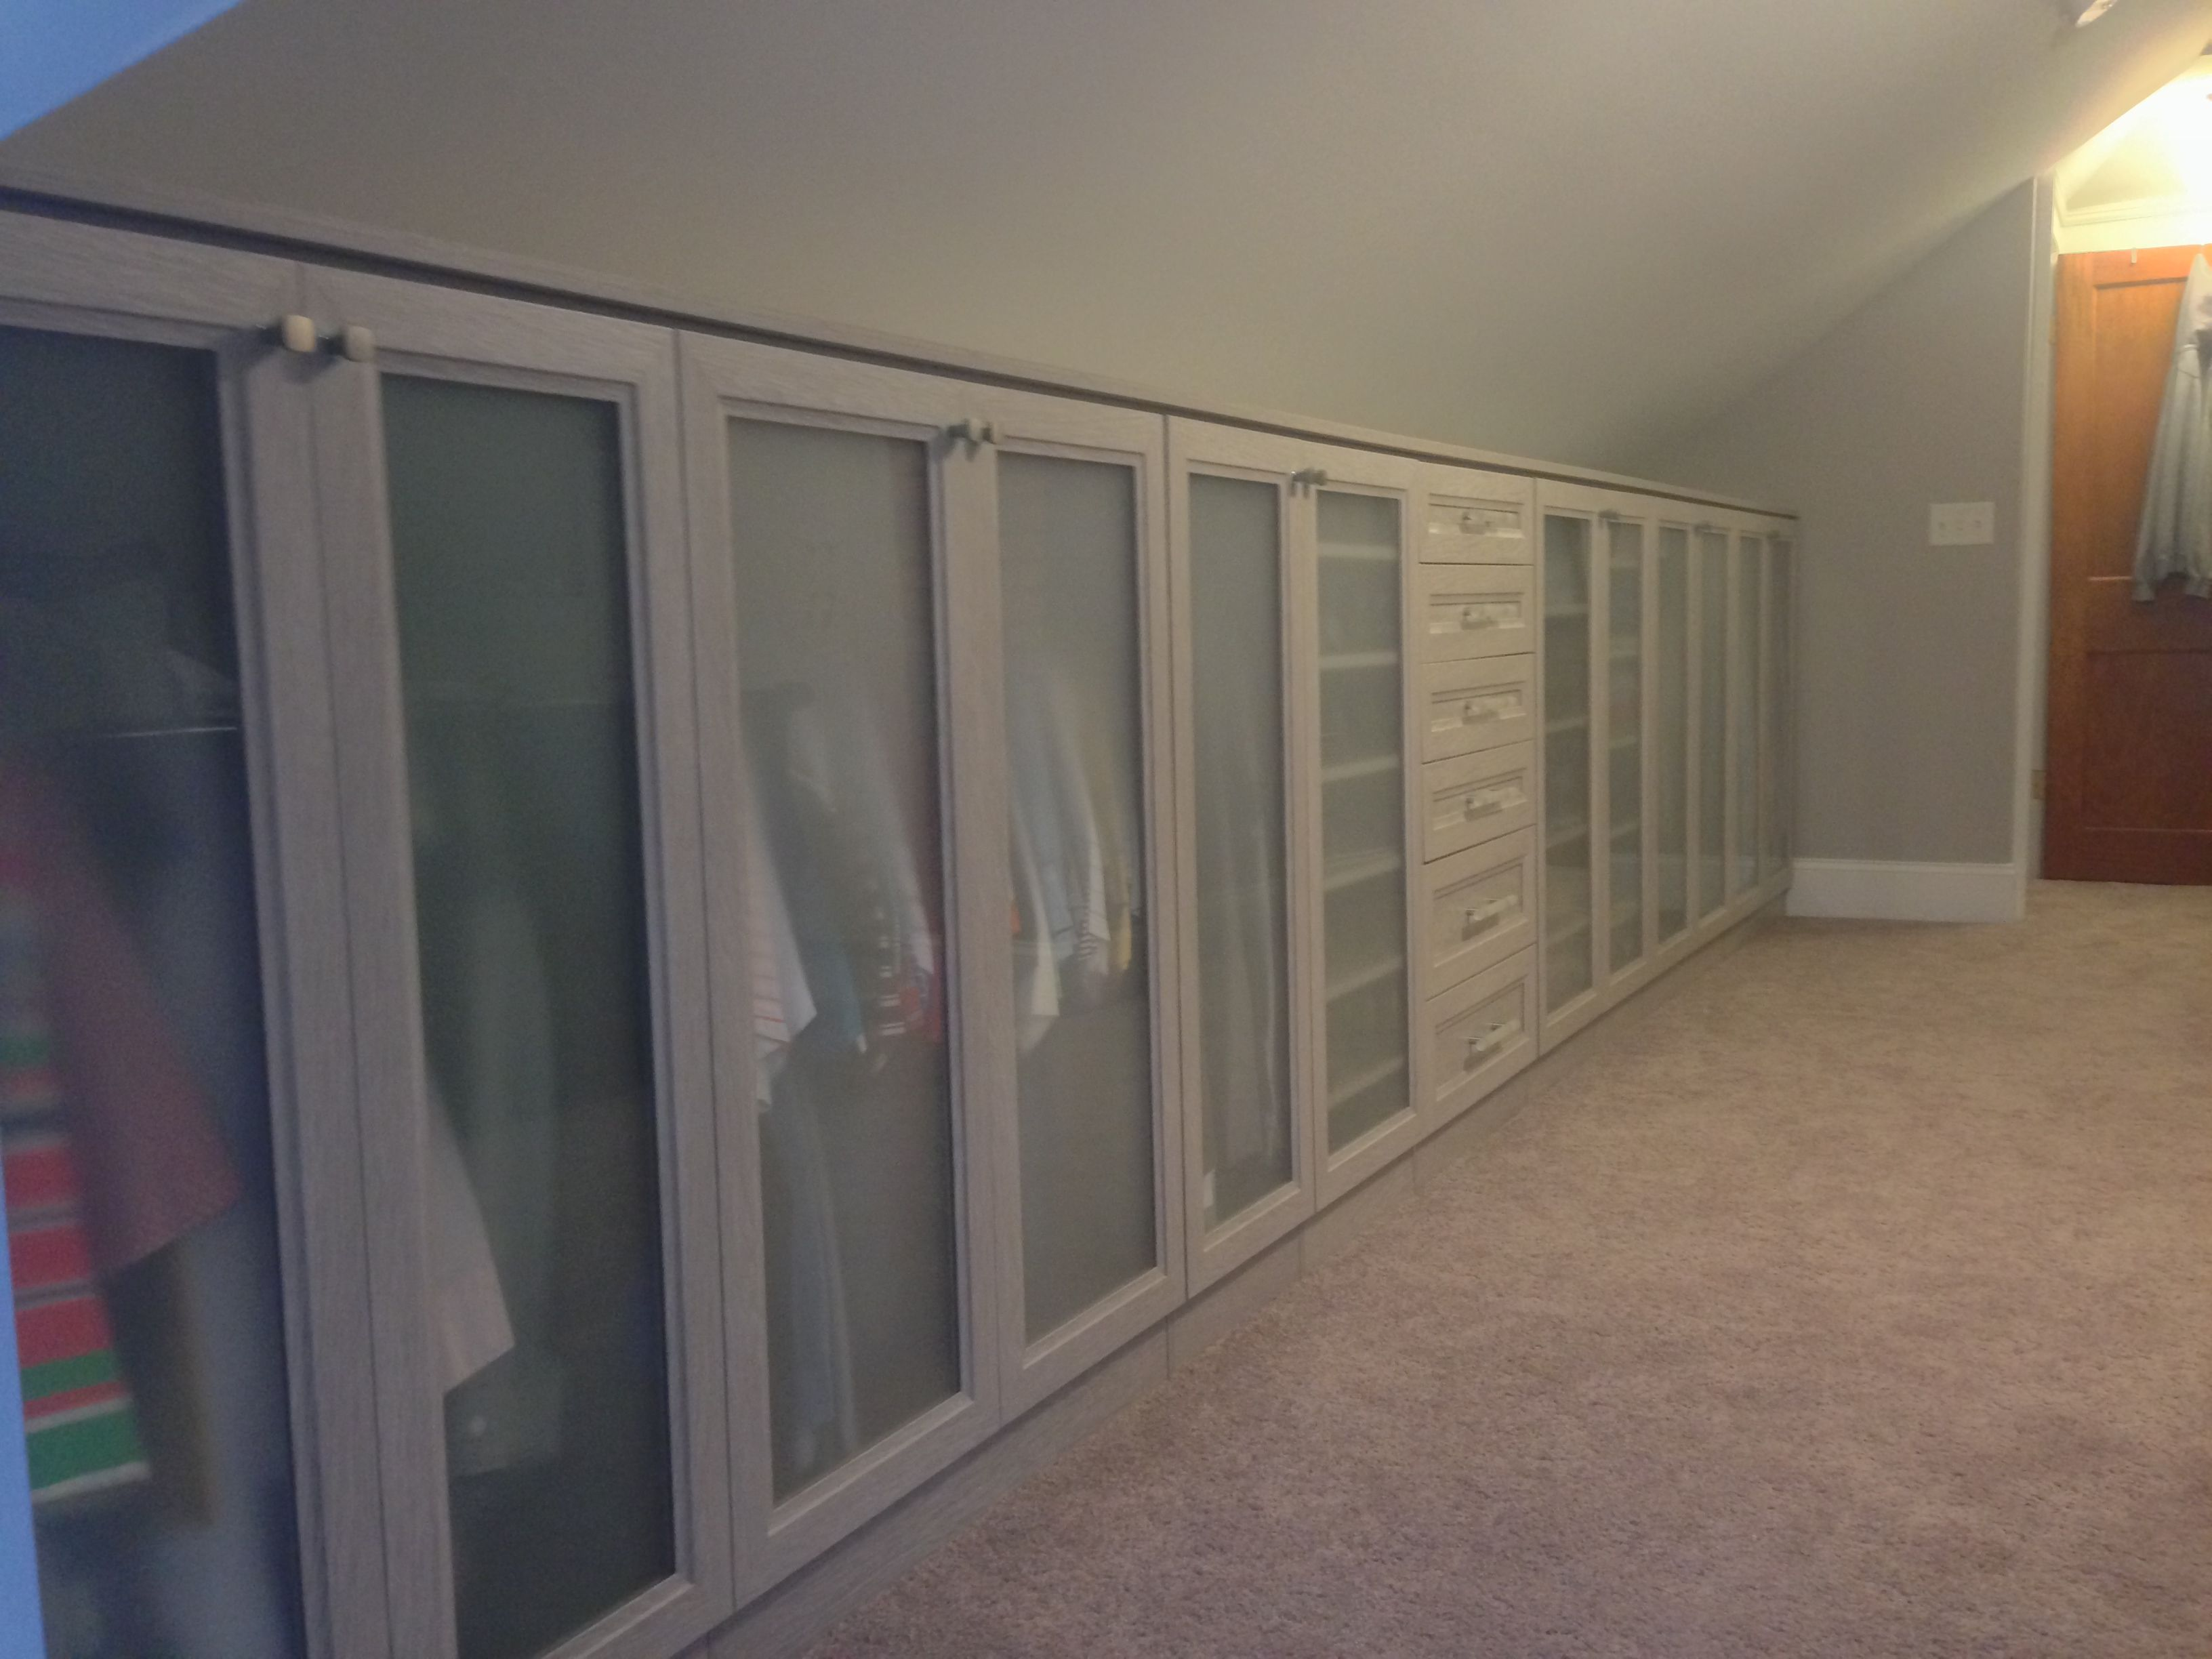 We love finding ways to optimize even the most unique spaces! California Closets Designer Tim Woolery